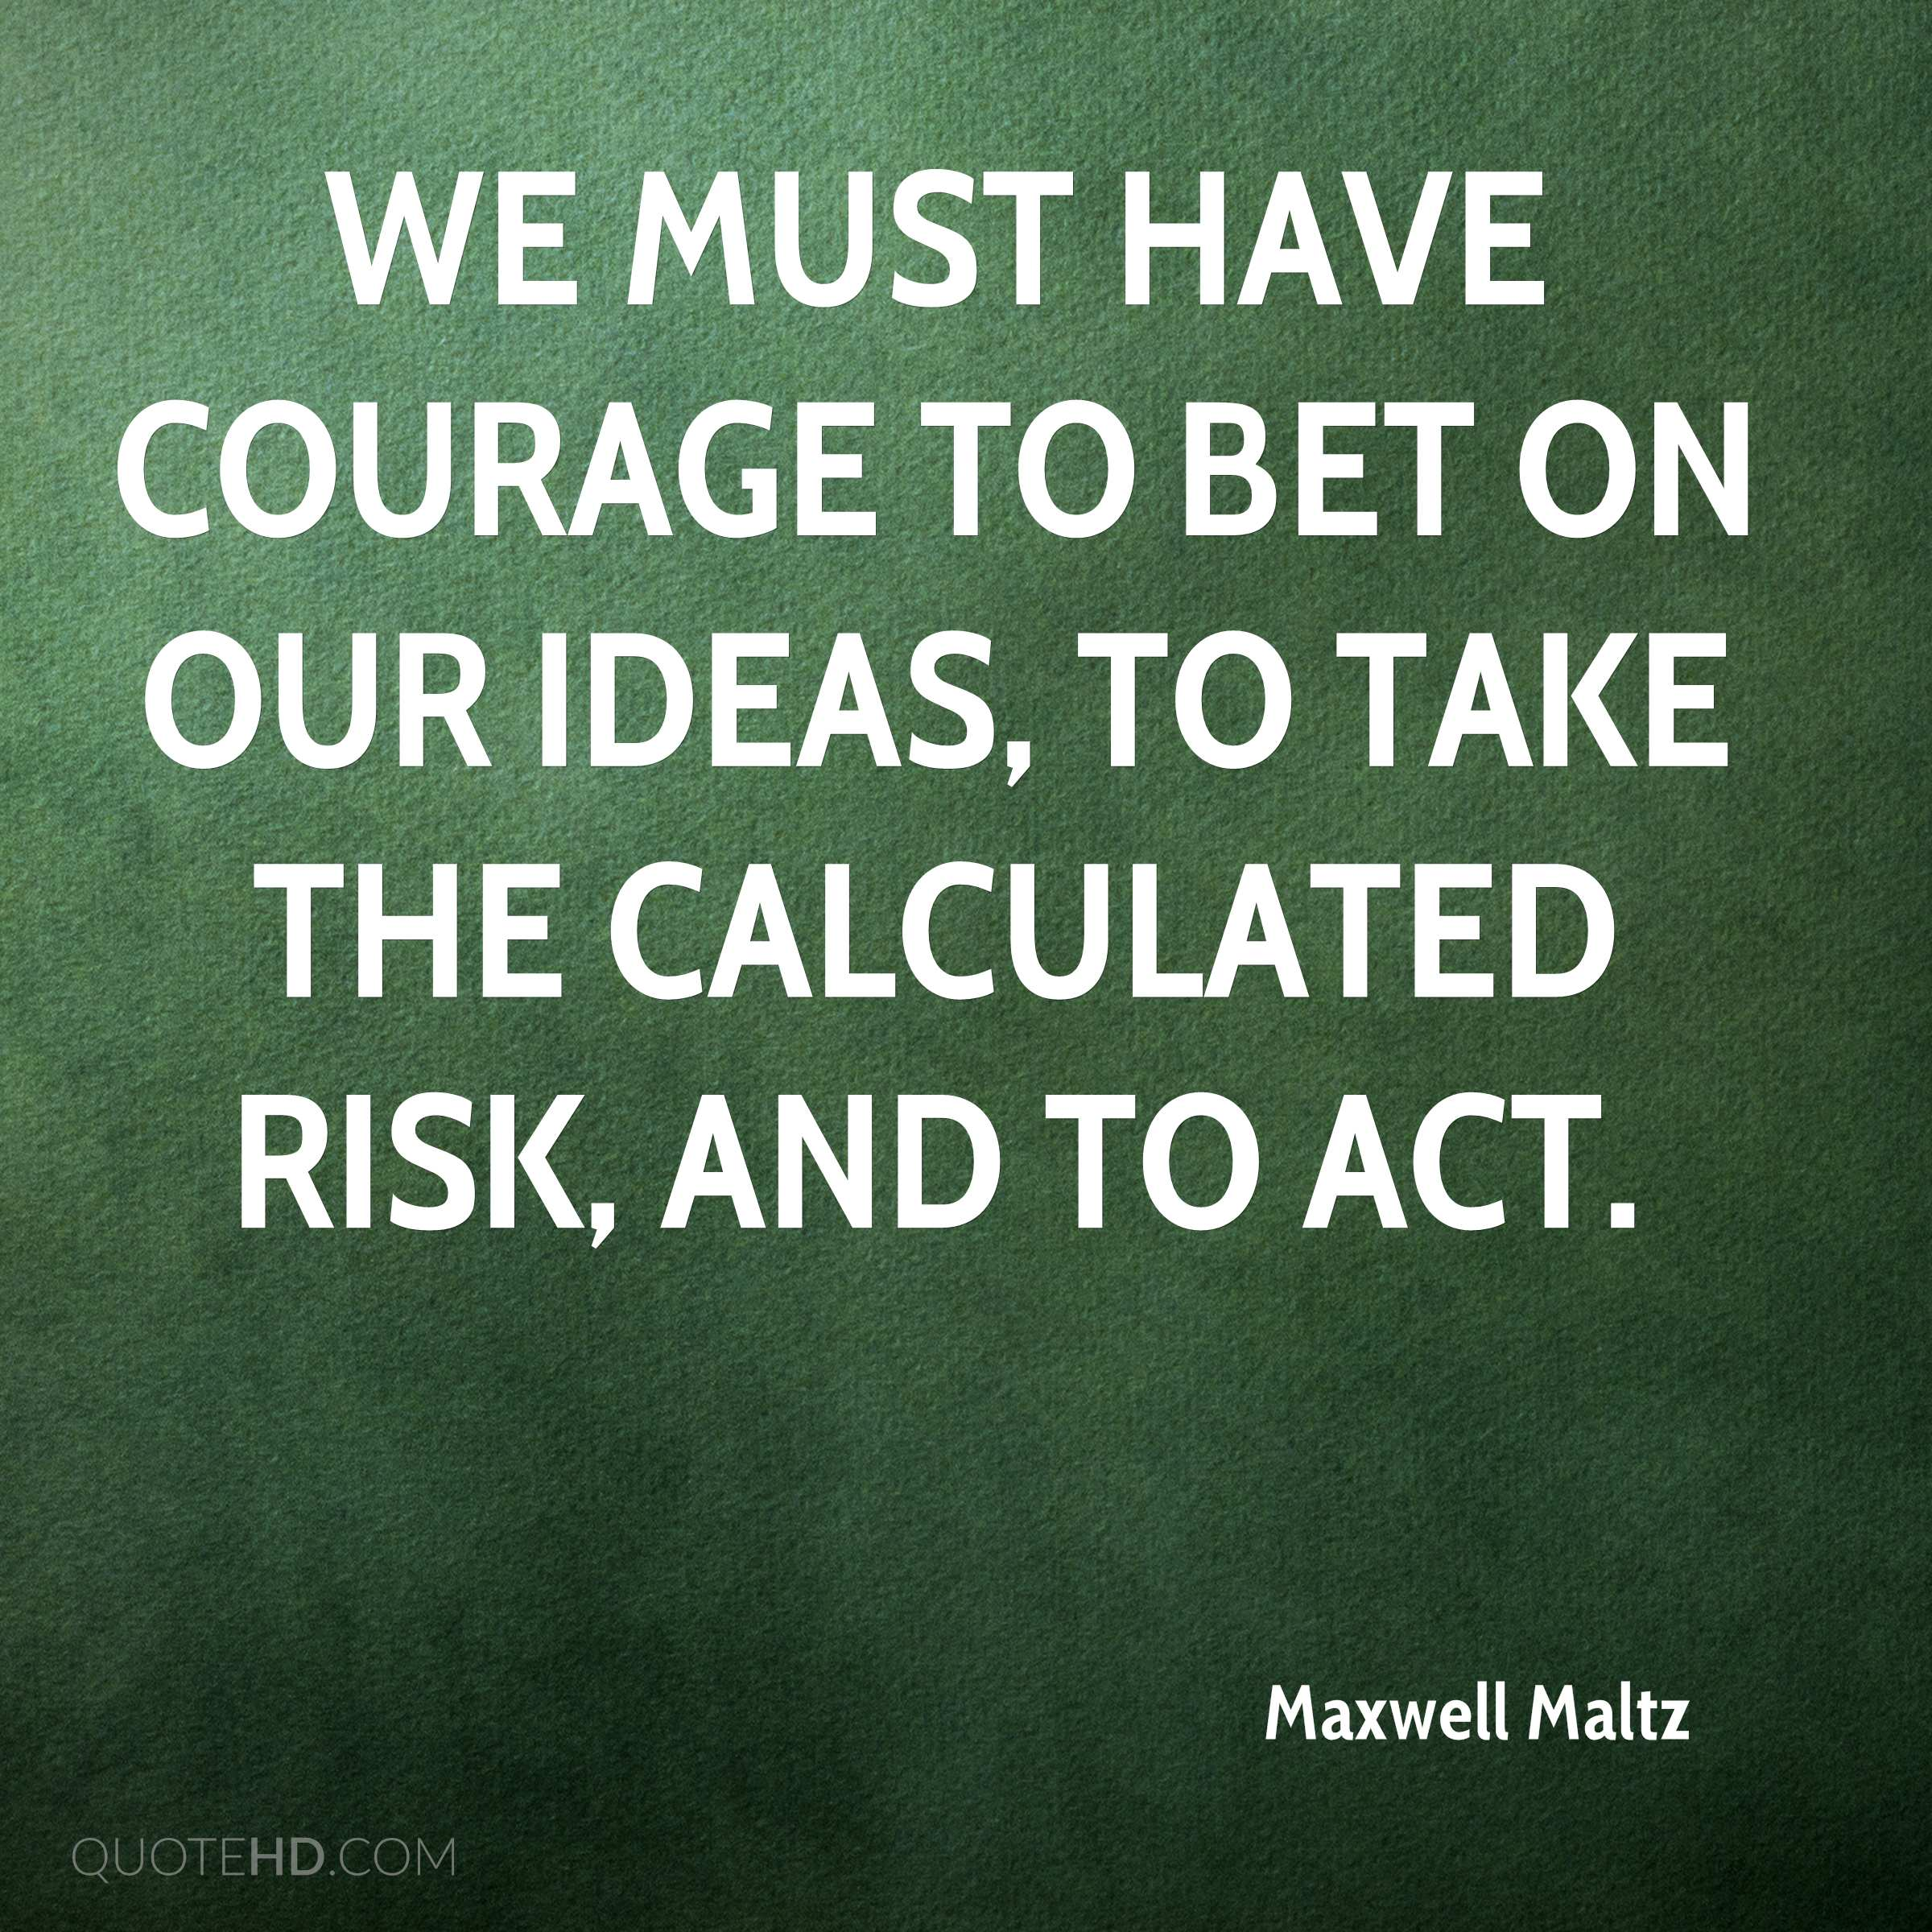 We must have courage to bet on our ideas, to take the calculated risk, and to act.